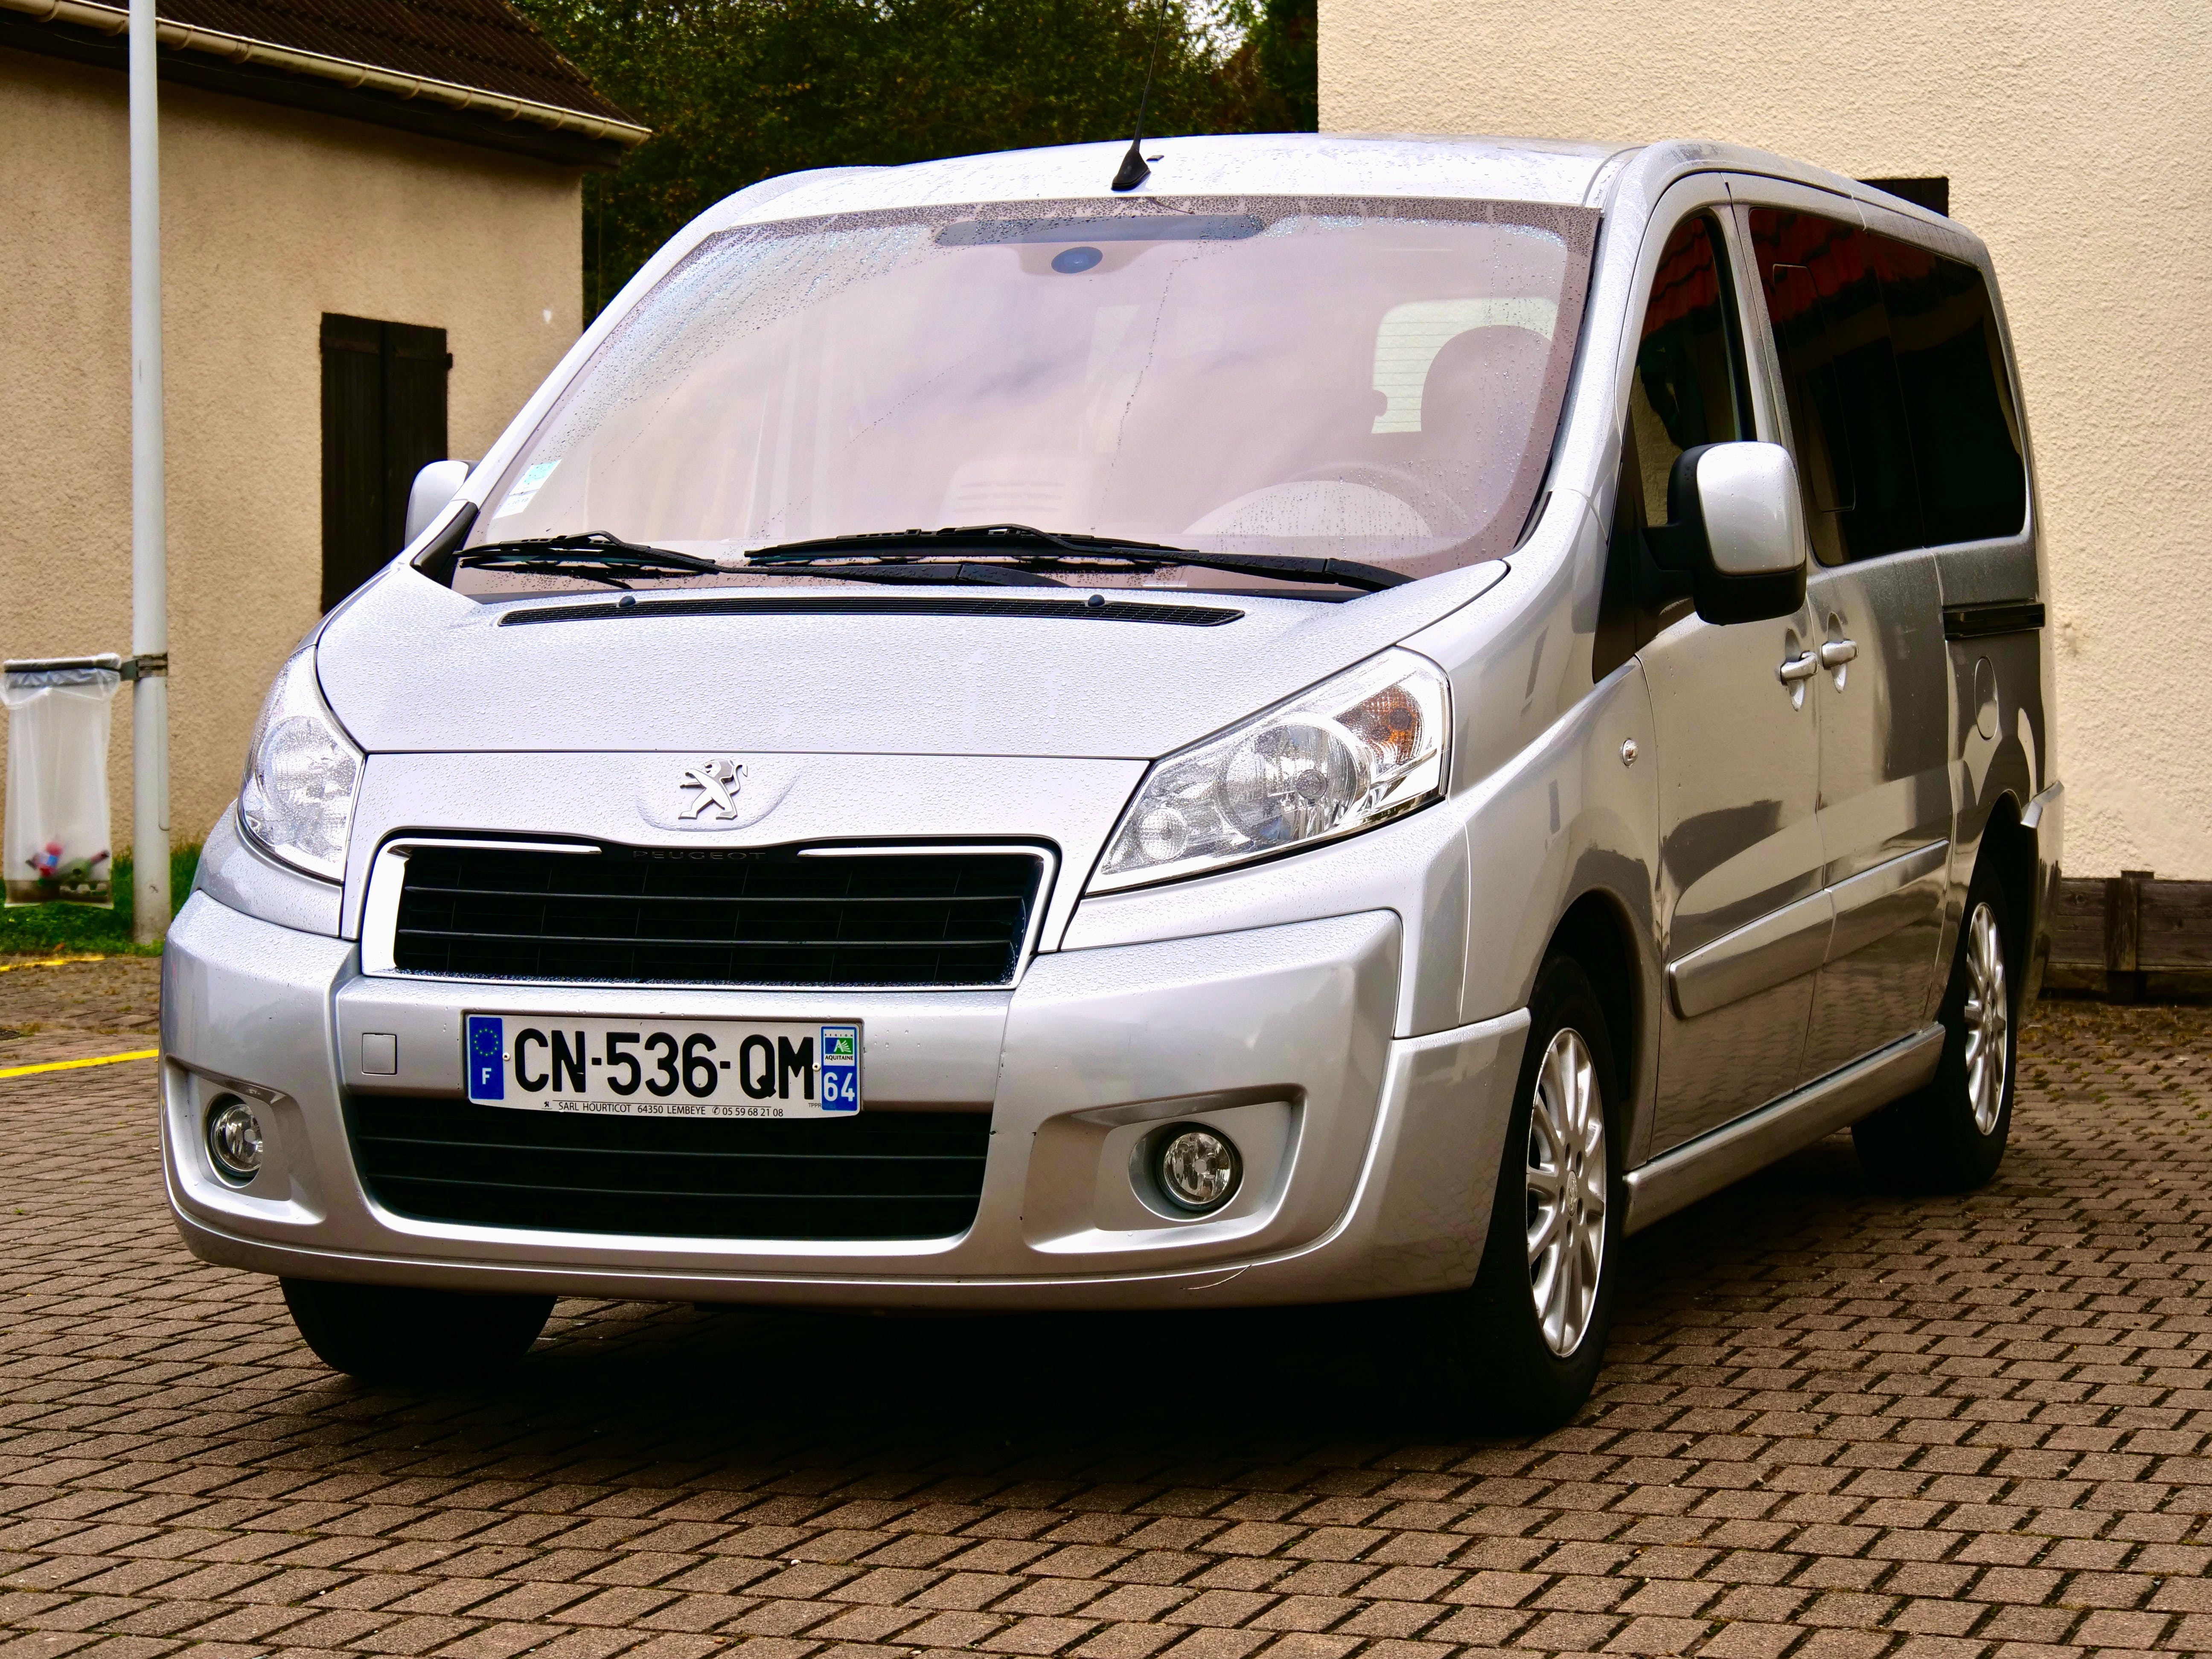 Peugeot Expert Tepee 2.0L HDI 163 ch avec Climatisation